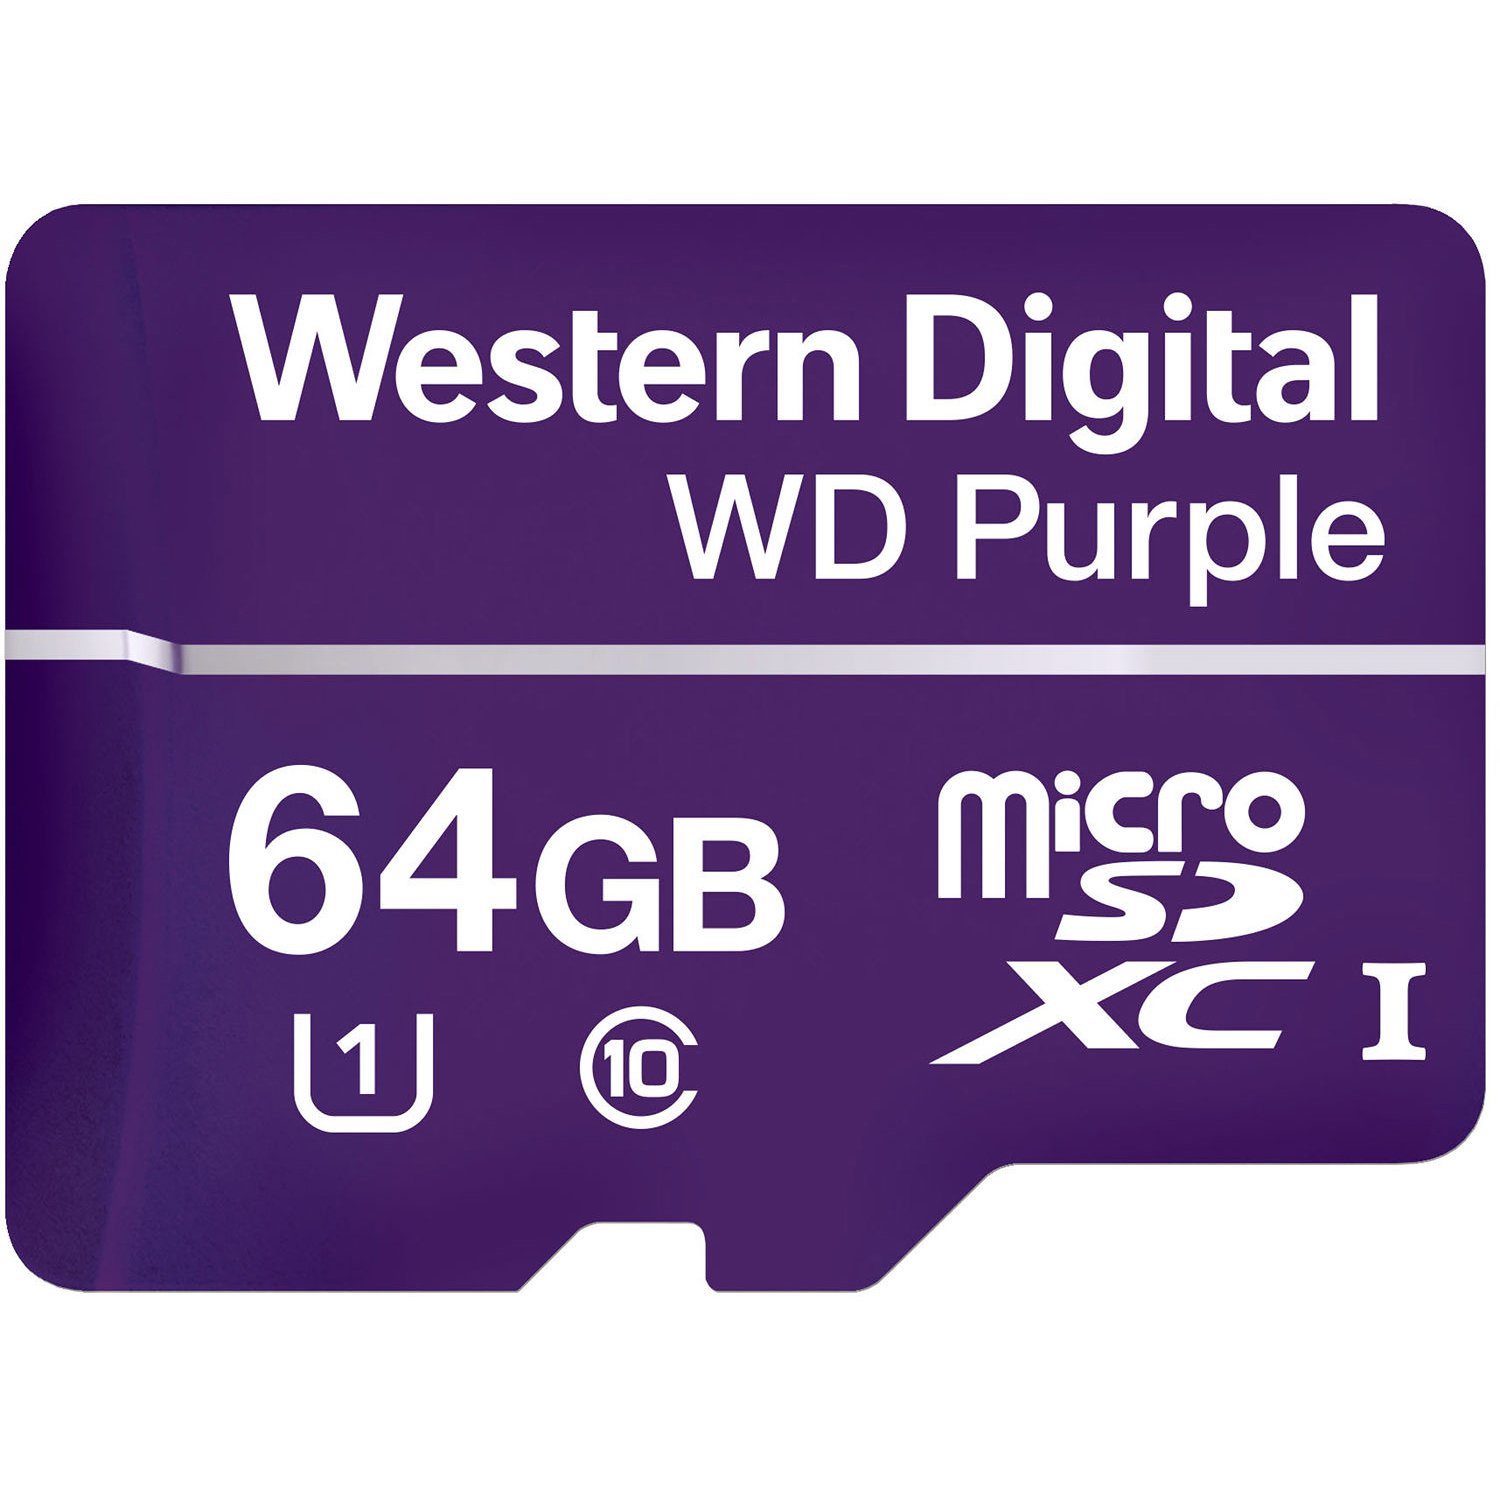 Original Western Digital Purple 64GB MicroSDXC Memory Card (WDD064G1P0A)